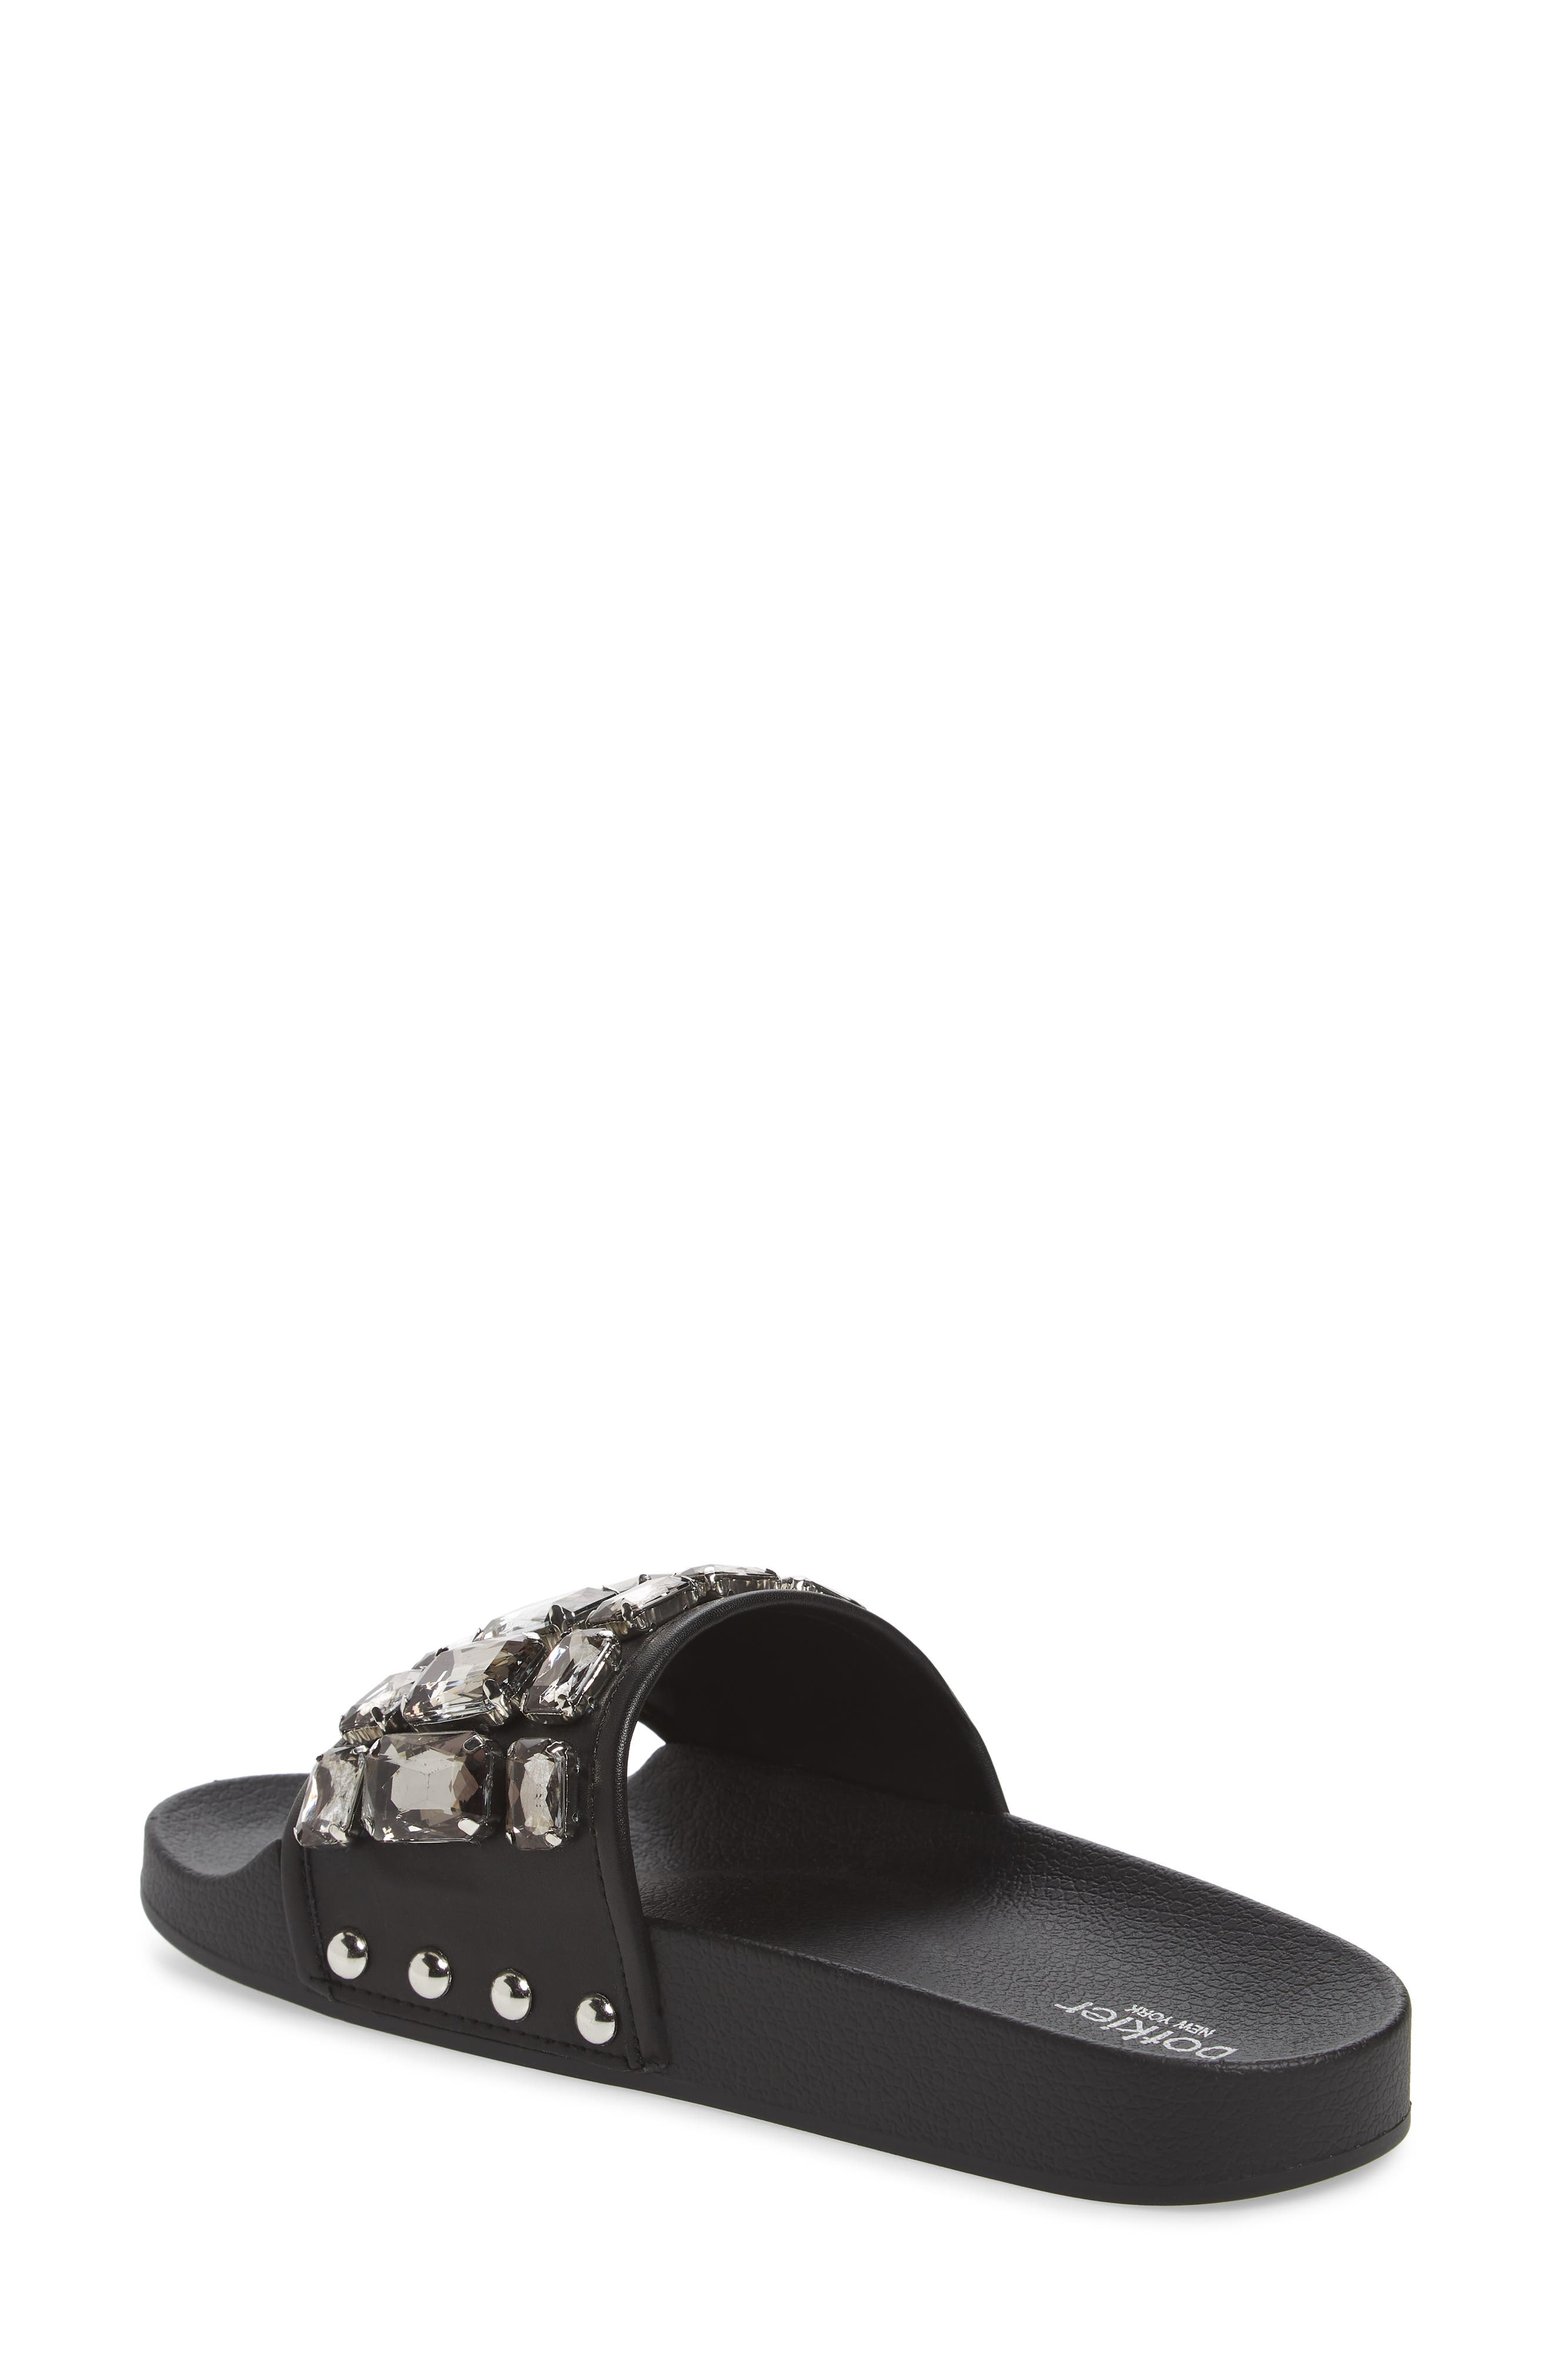 Freda Crystal Slide Sandal,                             Alternate thumbnail 2, color,                             BLACK LEATHER